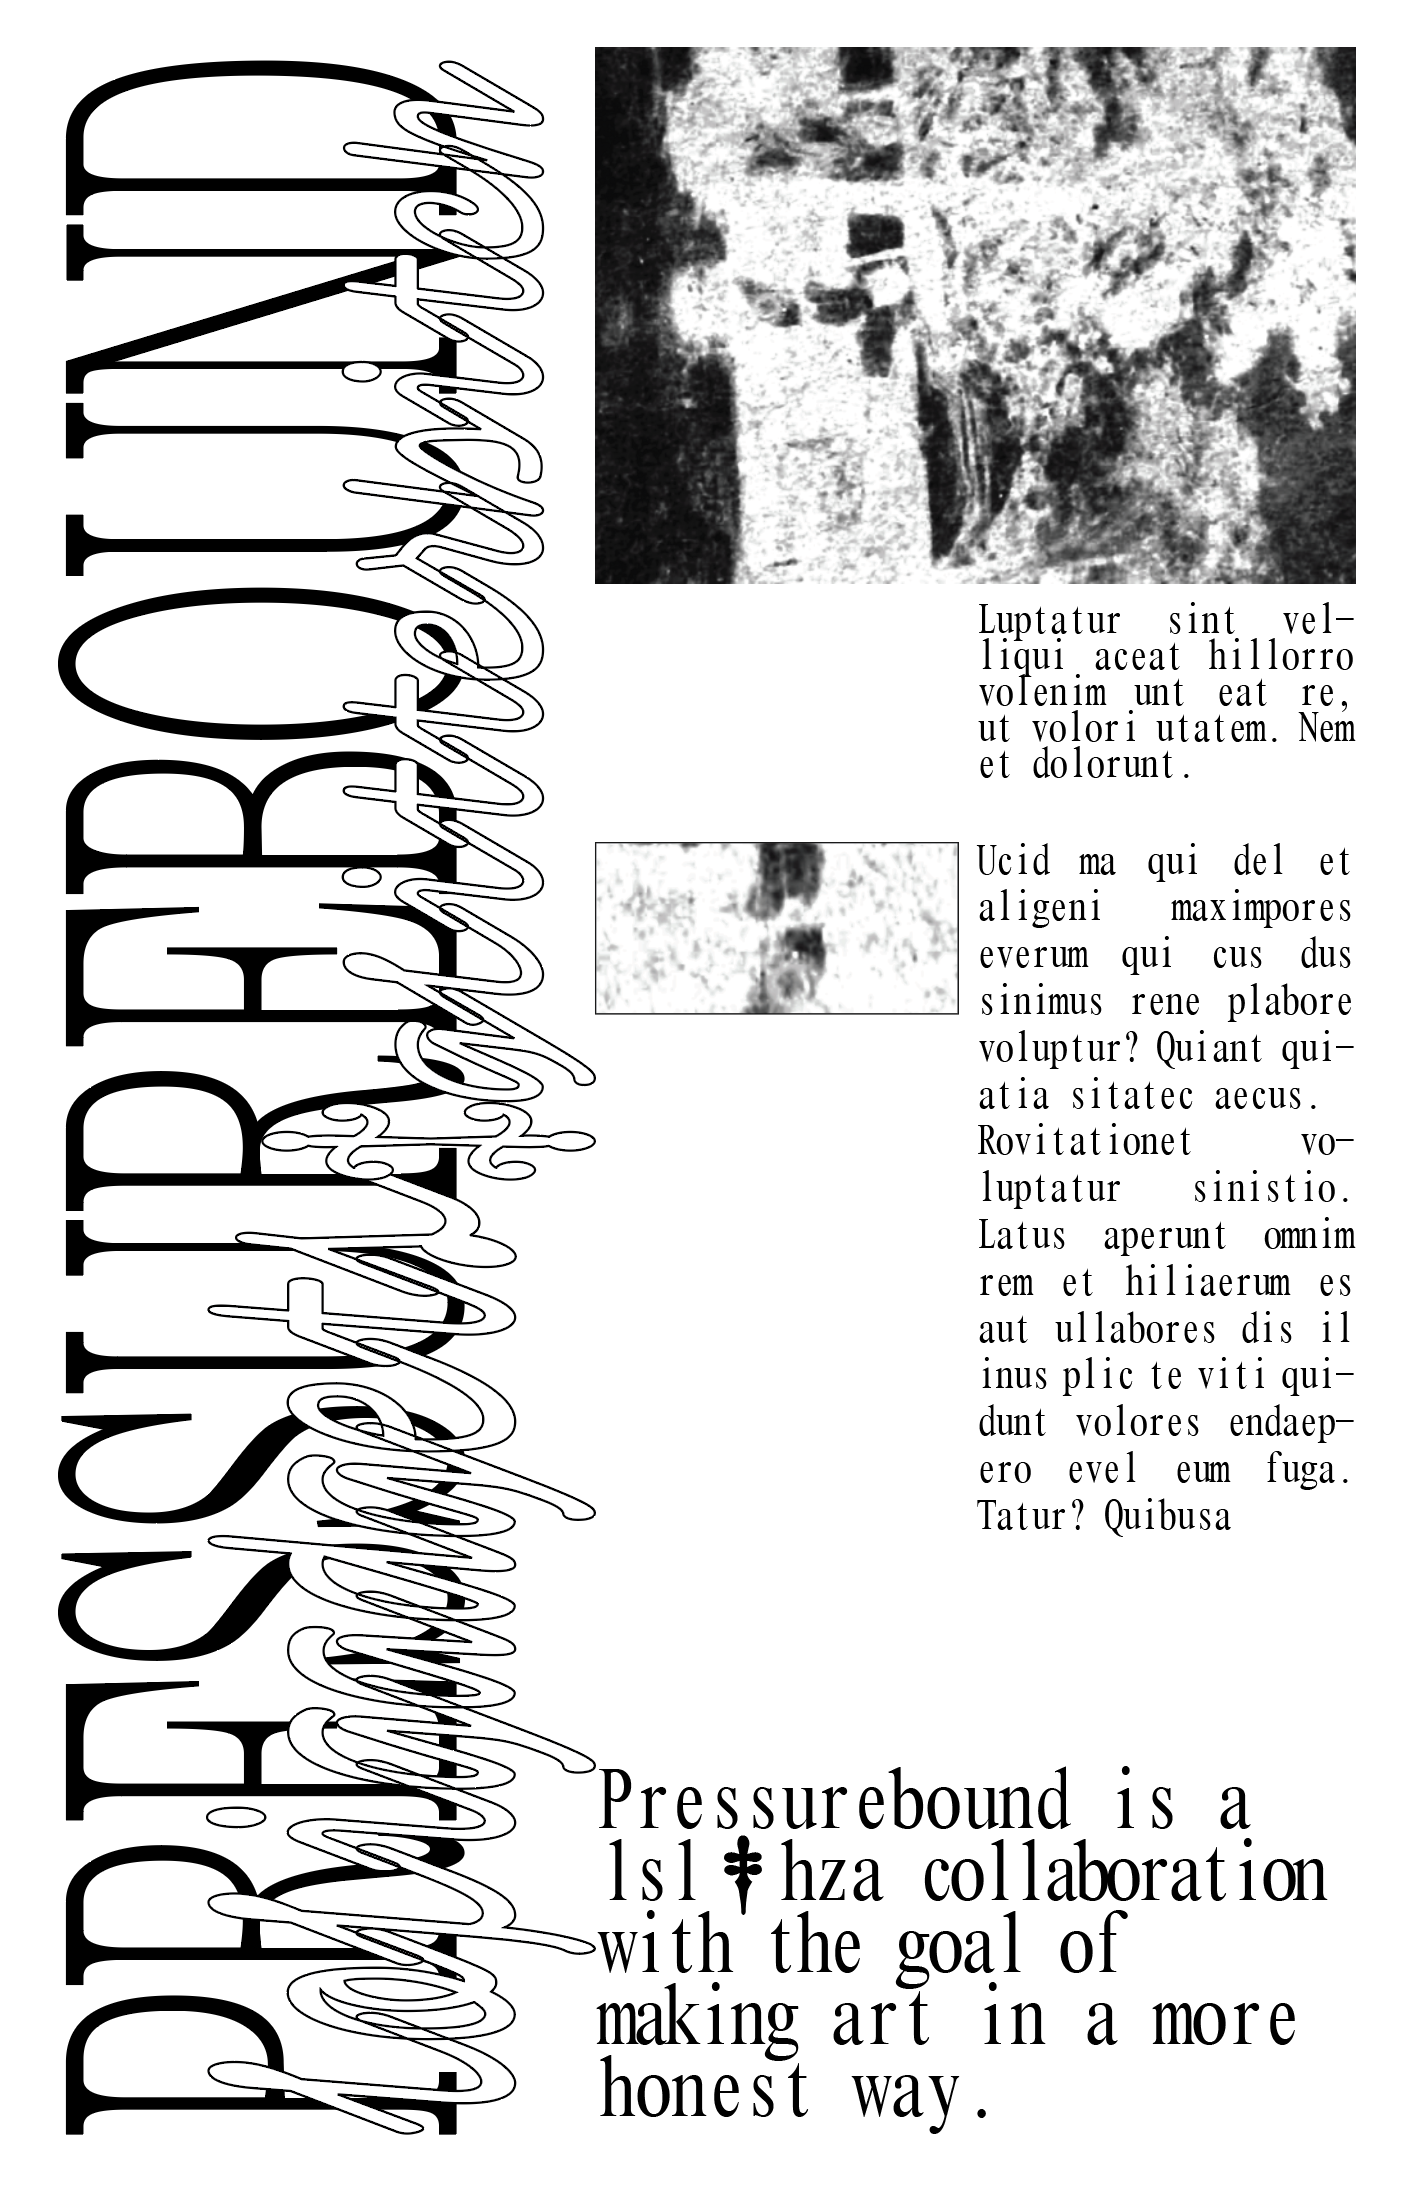 Screenshot of a draft of a poster, in black text/images on a white background. 'PRESSUREBOUND' stretched narrow and rotated on its side to sit at the left, taking up a column of space; entangled with it are the words 'lofigadgets' and 'glitterbitch' in a slightly bubbly font. To the top right corner is an unidentifiable image (likely a closeup of something) with two snippets of text stacked below. At the bottom right is the text 'Pressurebound is a lsl & hza collaboration with the goal of making art in a more honest way', where the & is replaced by a dagger symbol.